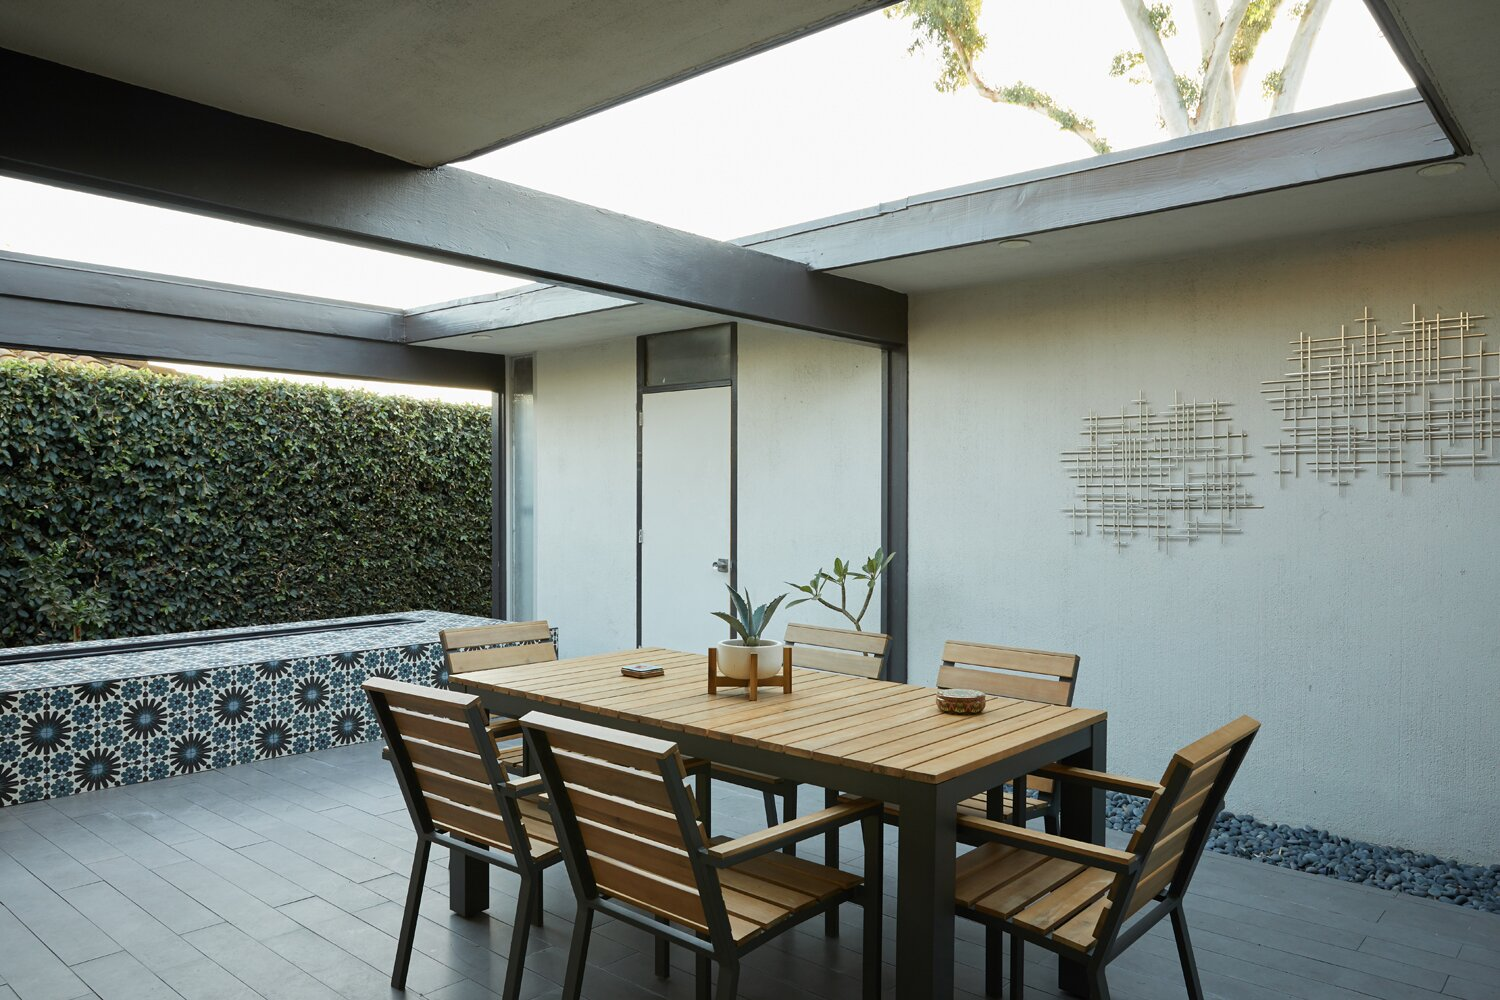 Courtyard of Whittier Midcentury Home